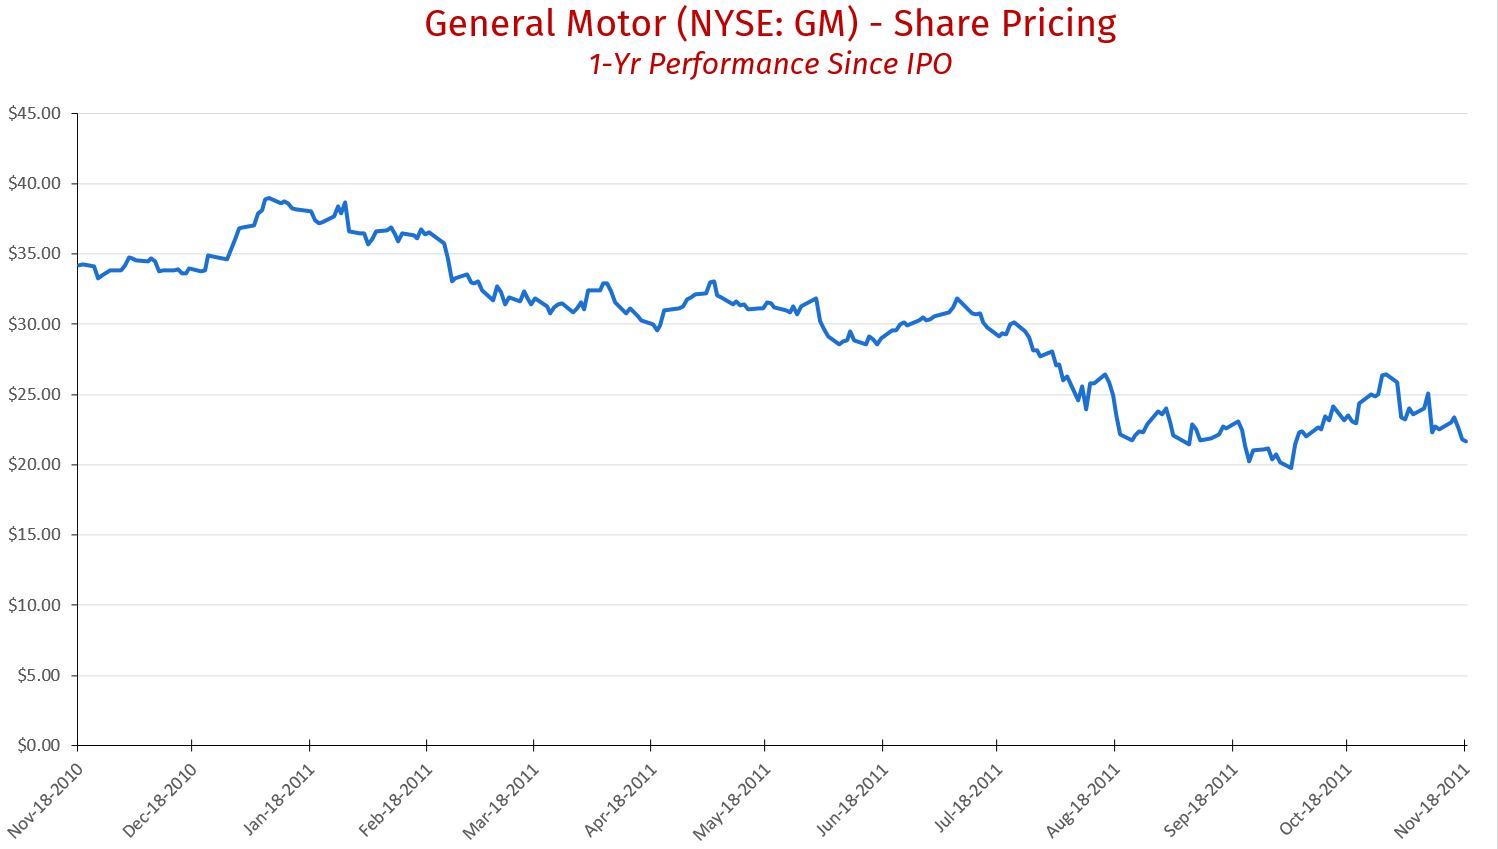 GM Share Pricing